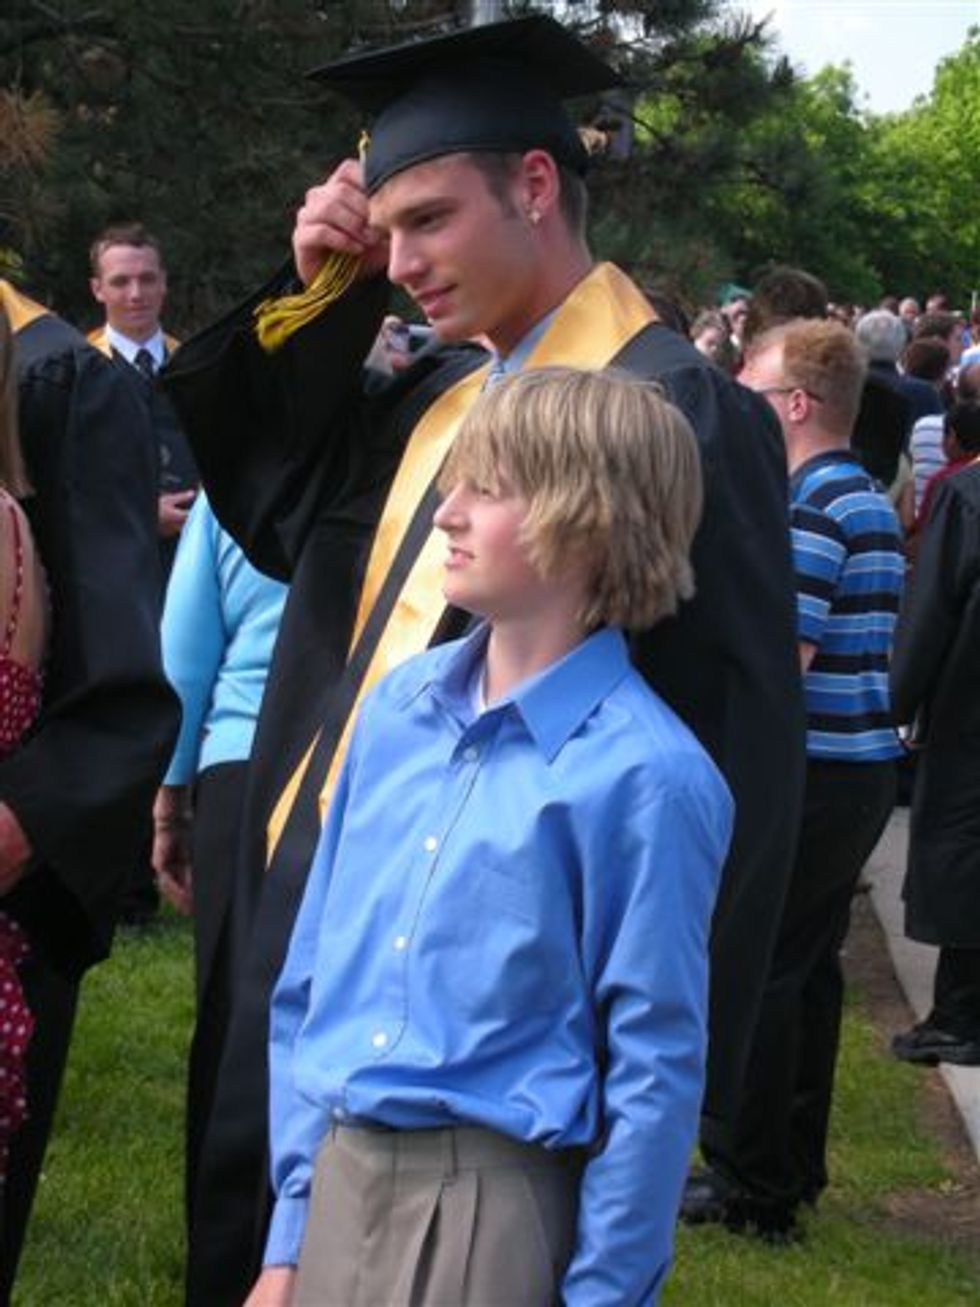 Chicagoland's Cutest Graduate: My Cousin Ryan!